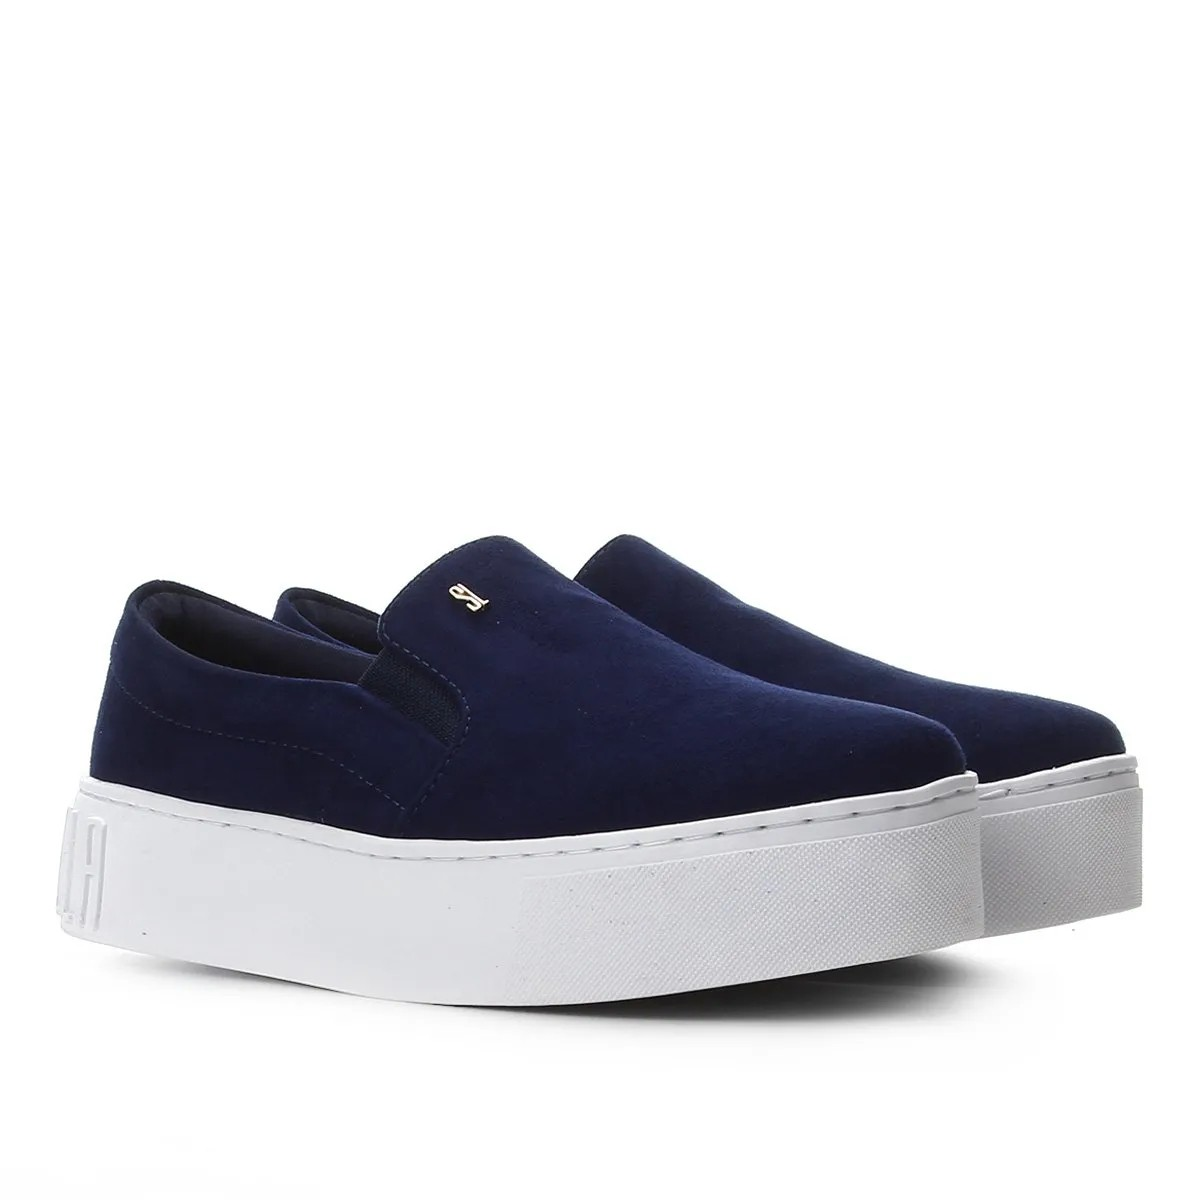 Slip On by Santa Lolla Azul Suede Sola Alta